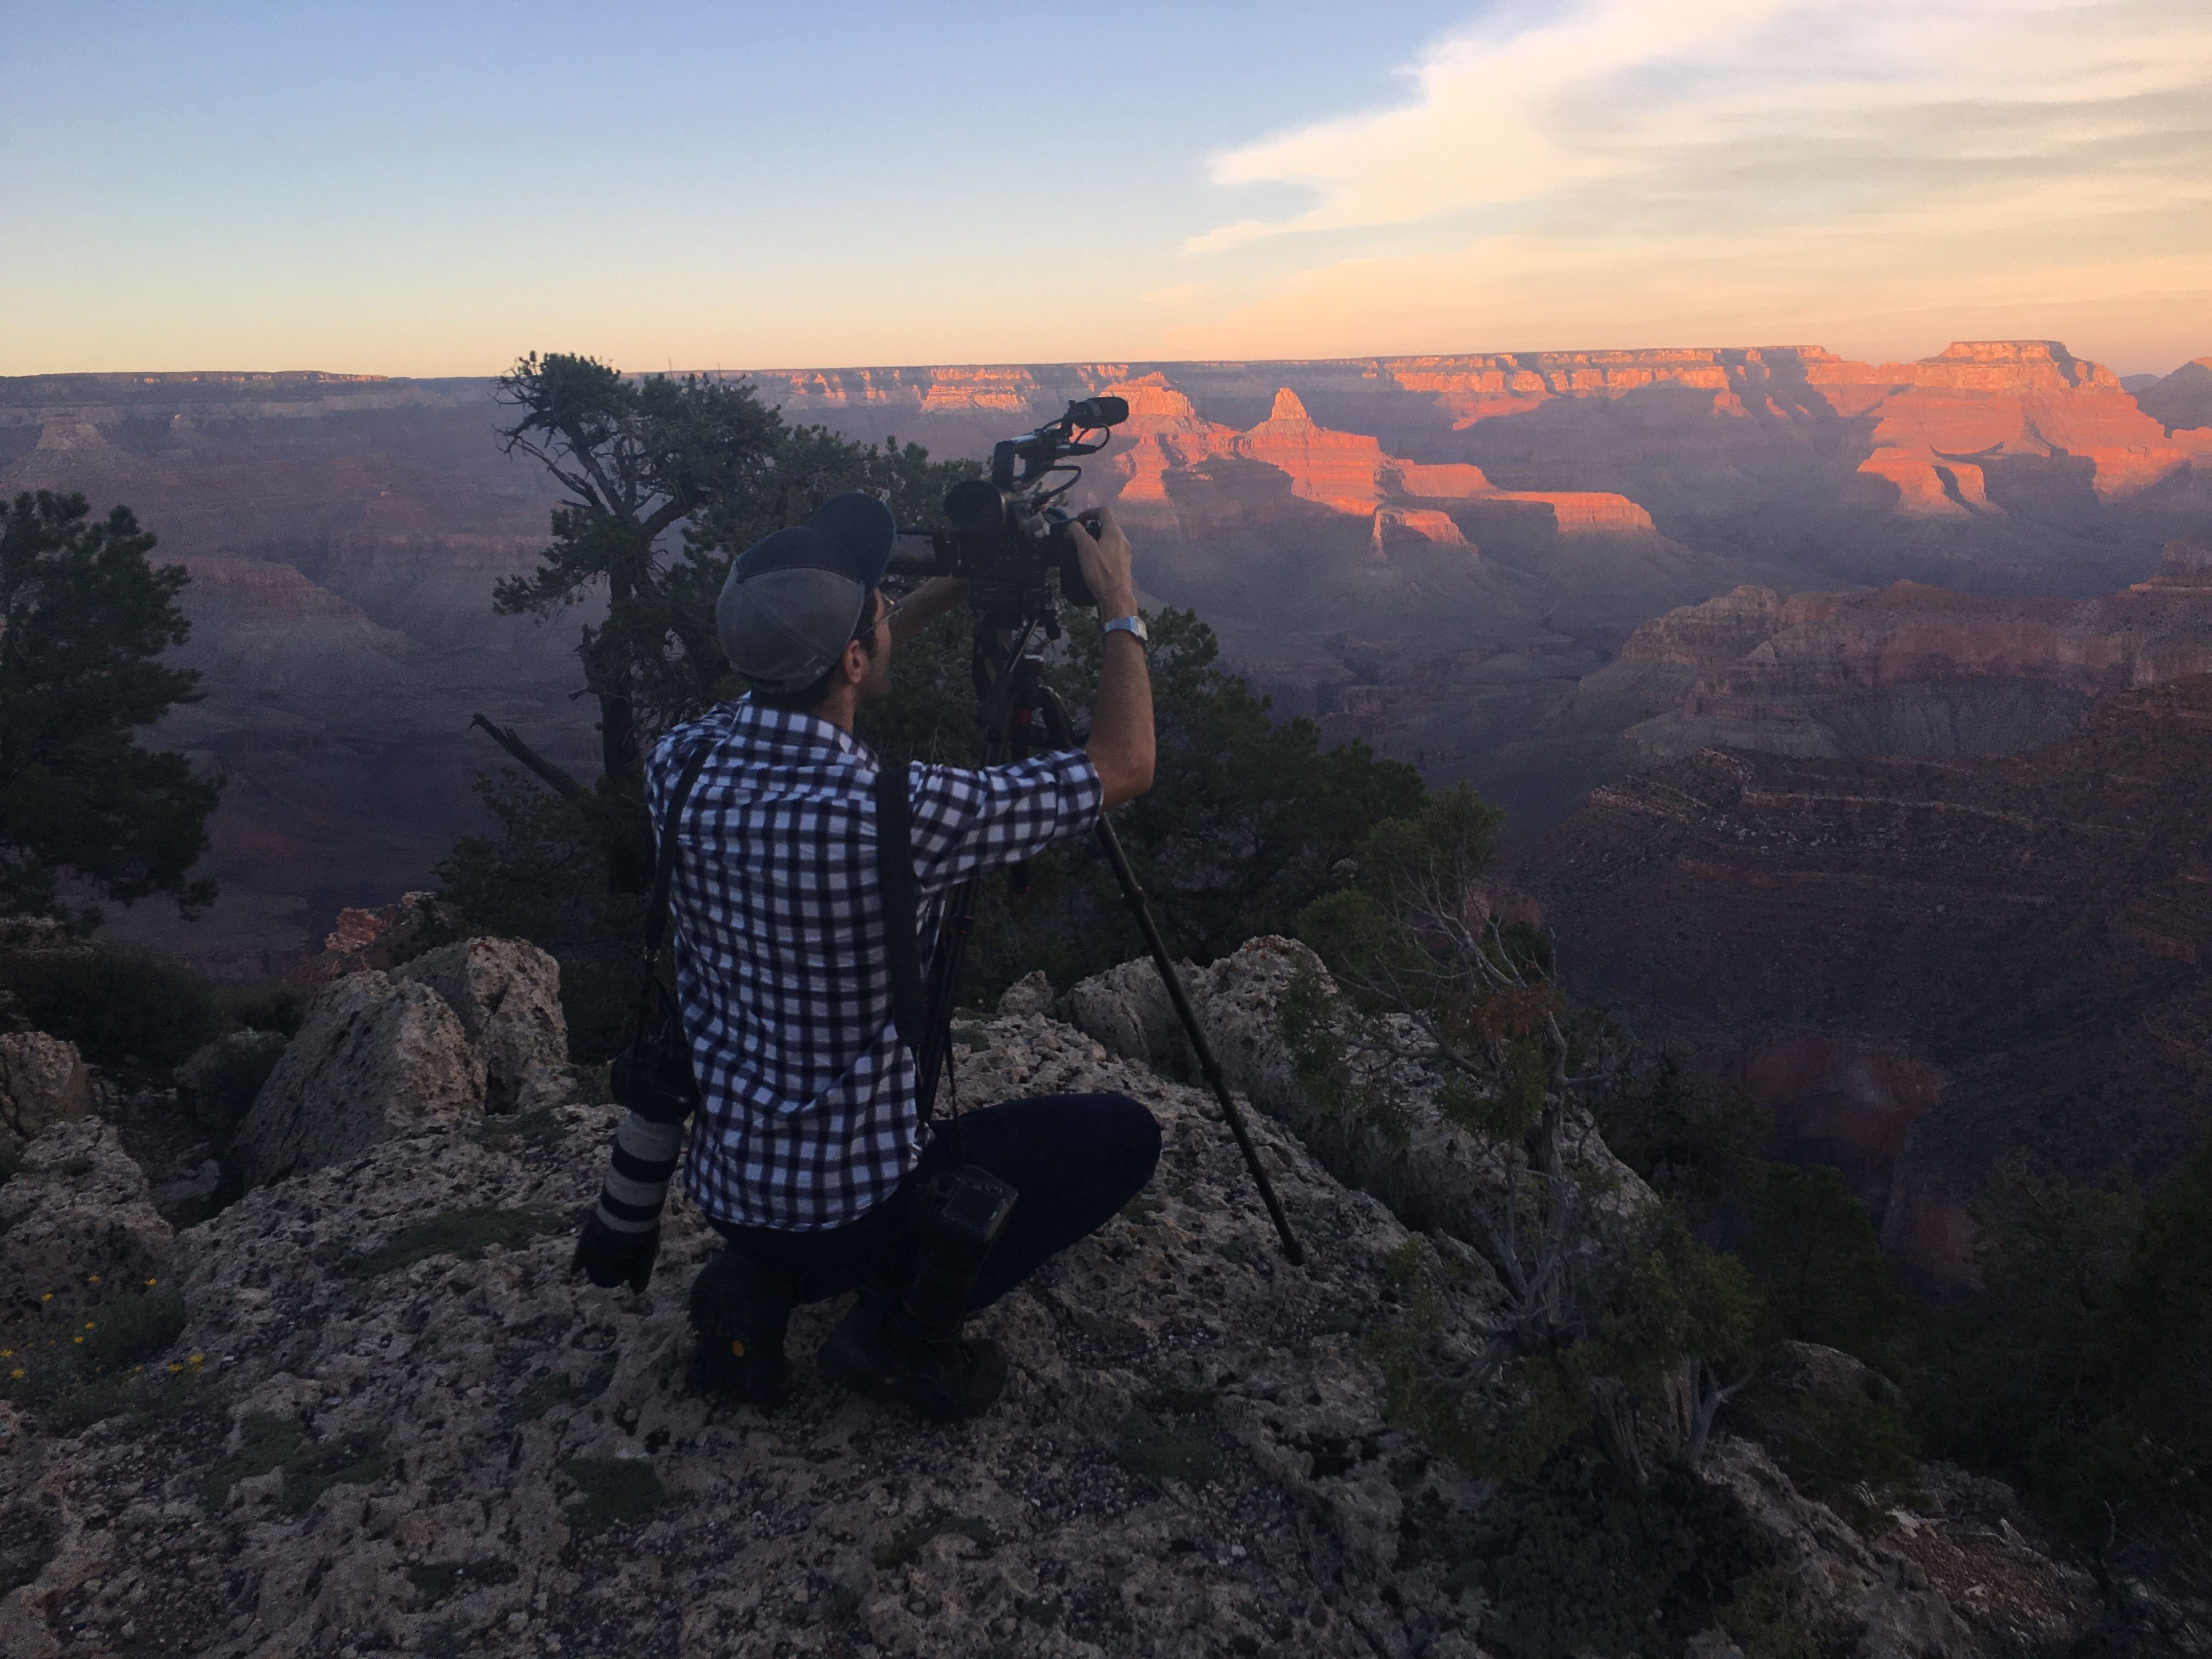 With photographer Tamir Kalifa, on assignment at the Grand Canyon. September 2016